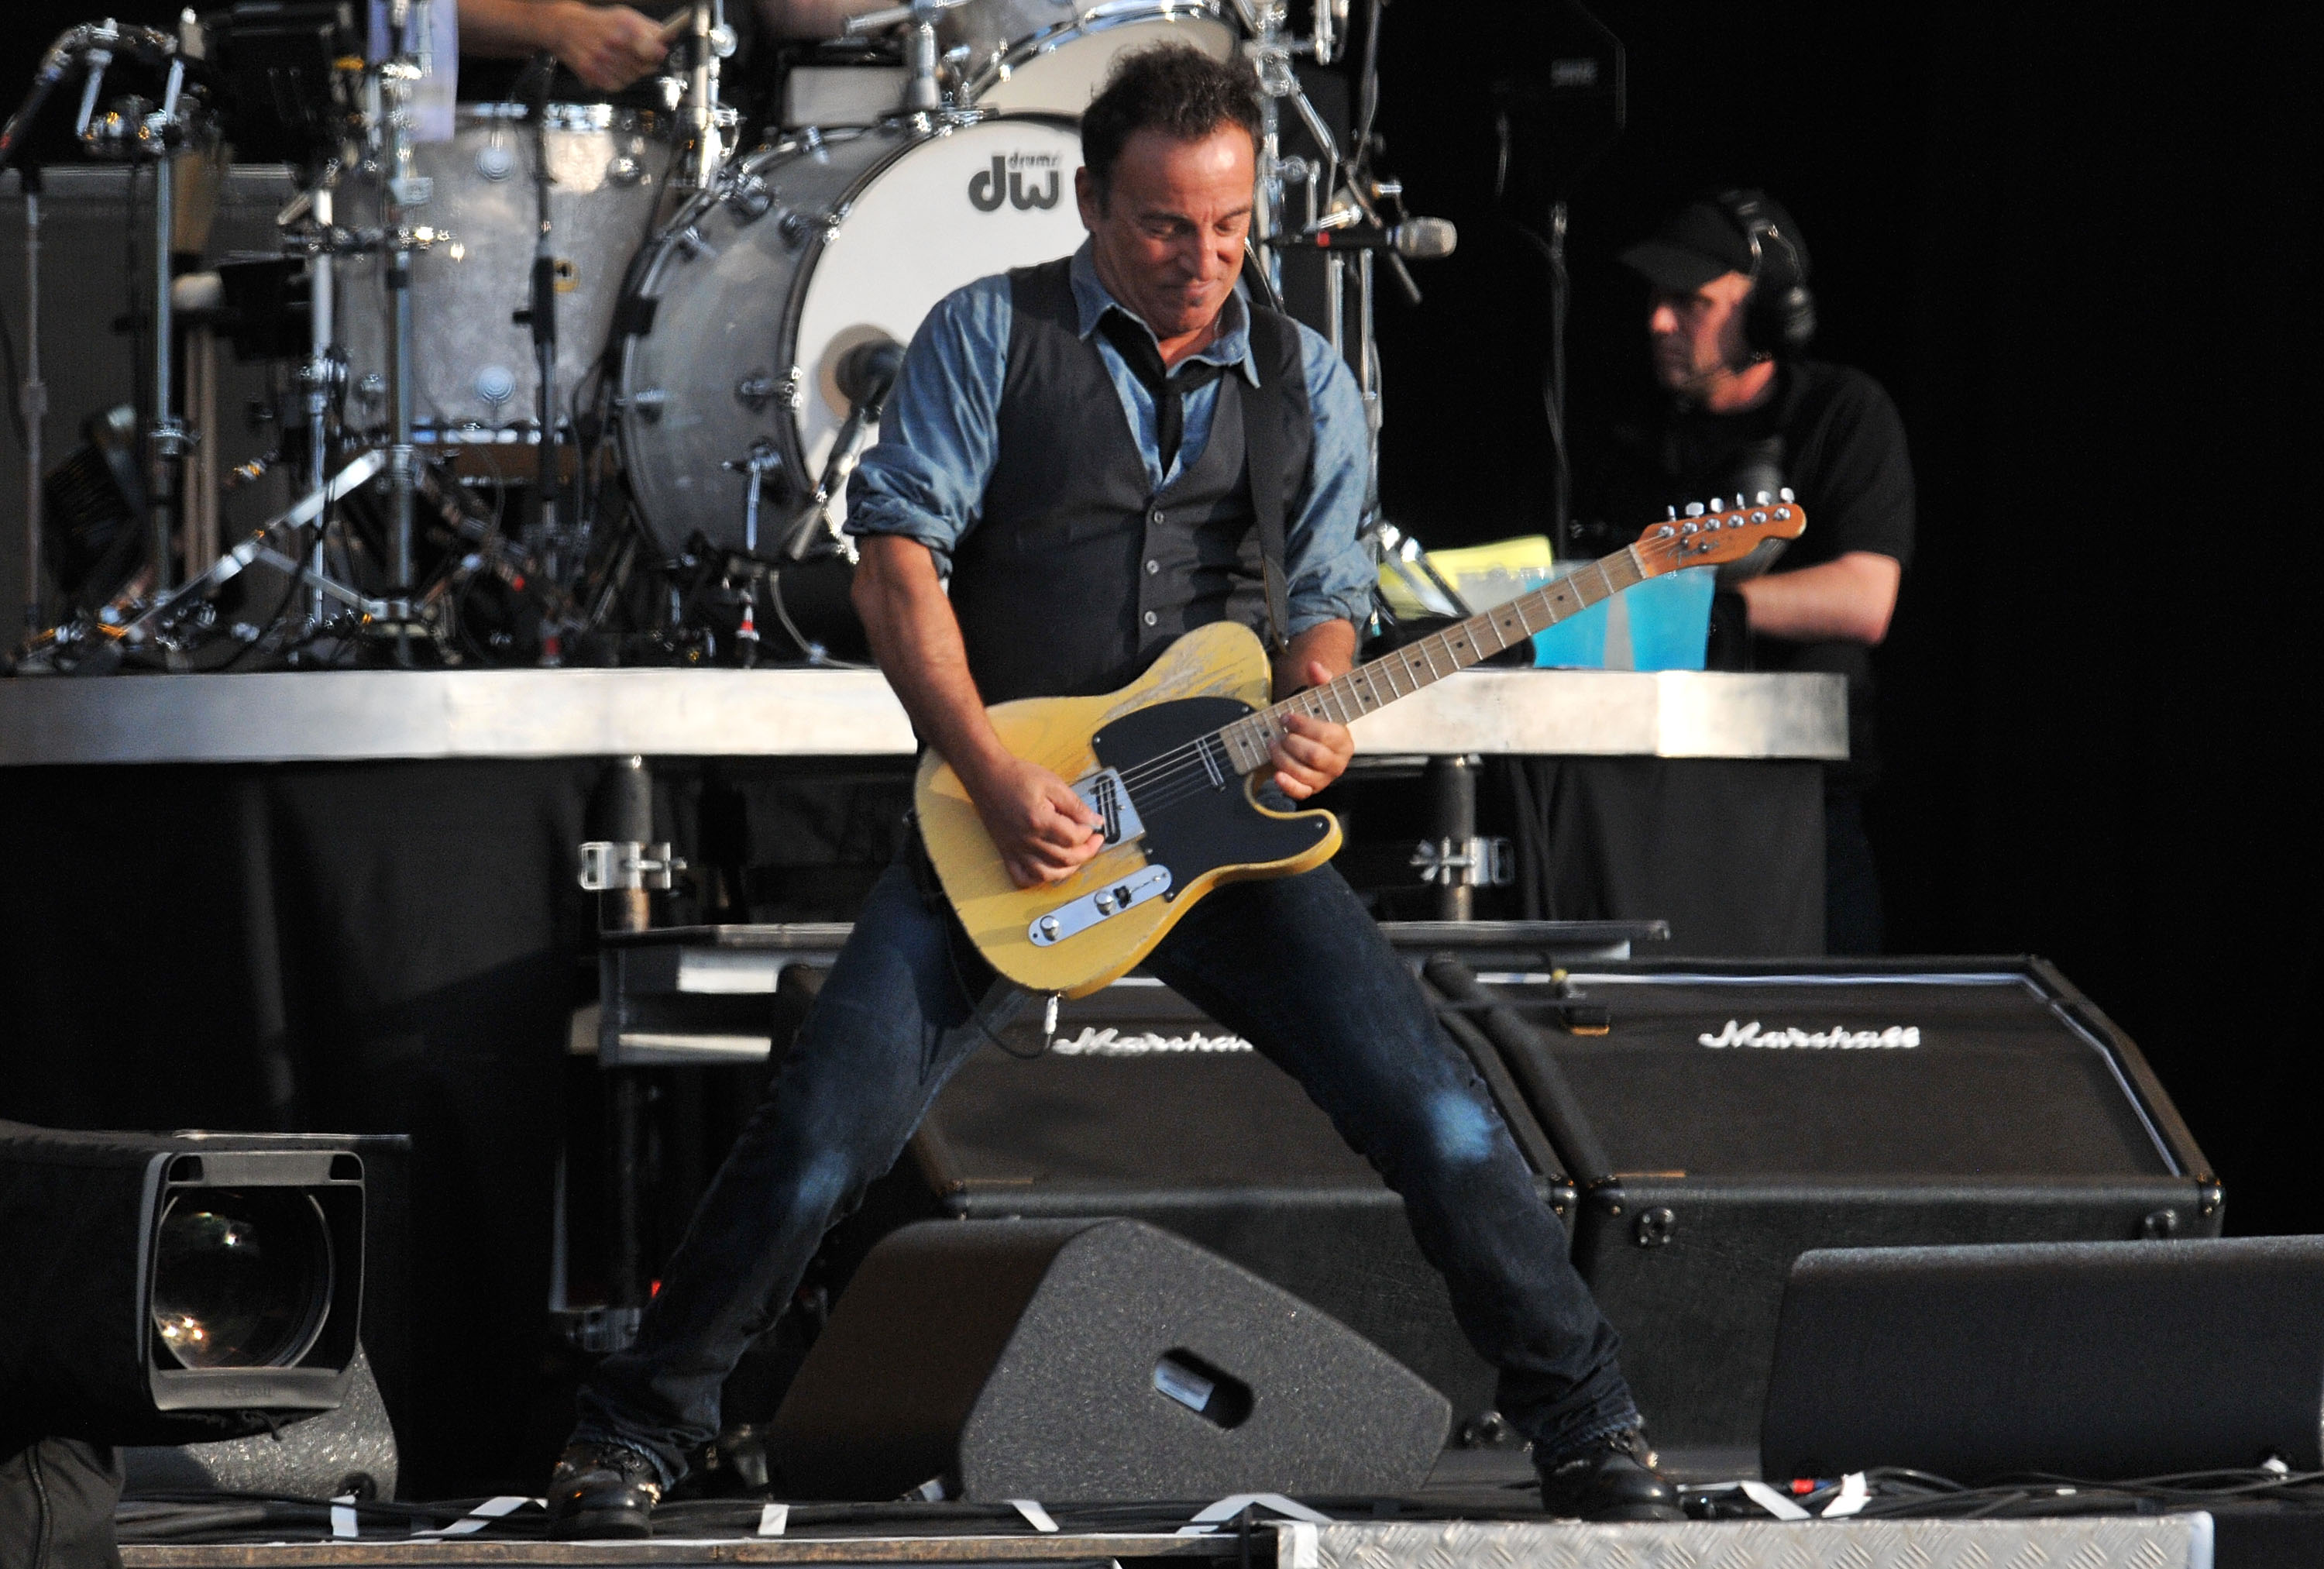 Bruce Springsteen pays tribute to James Gandolfini with Born To Run performance